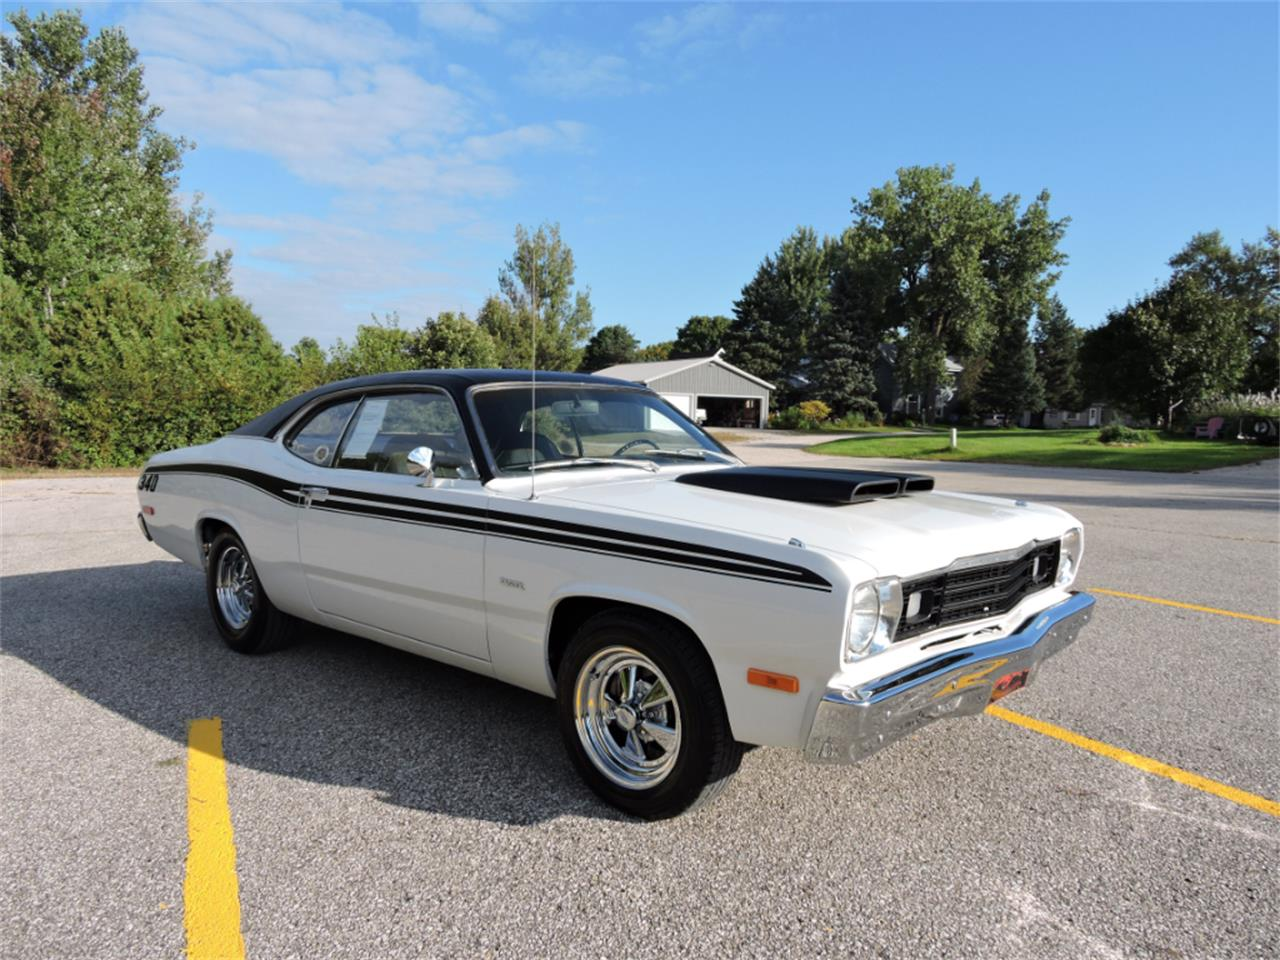 1973 Plymouth Duster for sale in Greene, IA – photo 53